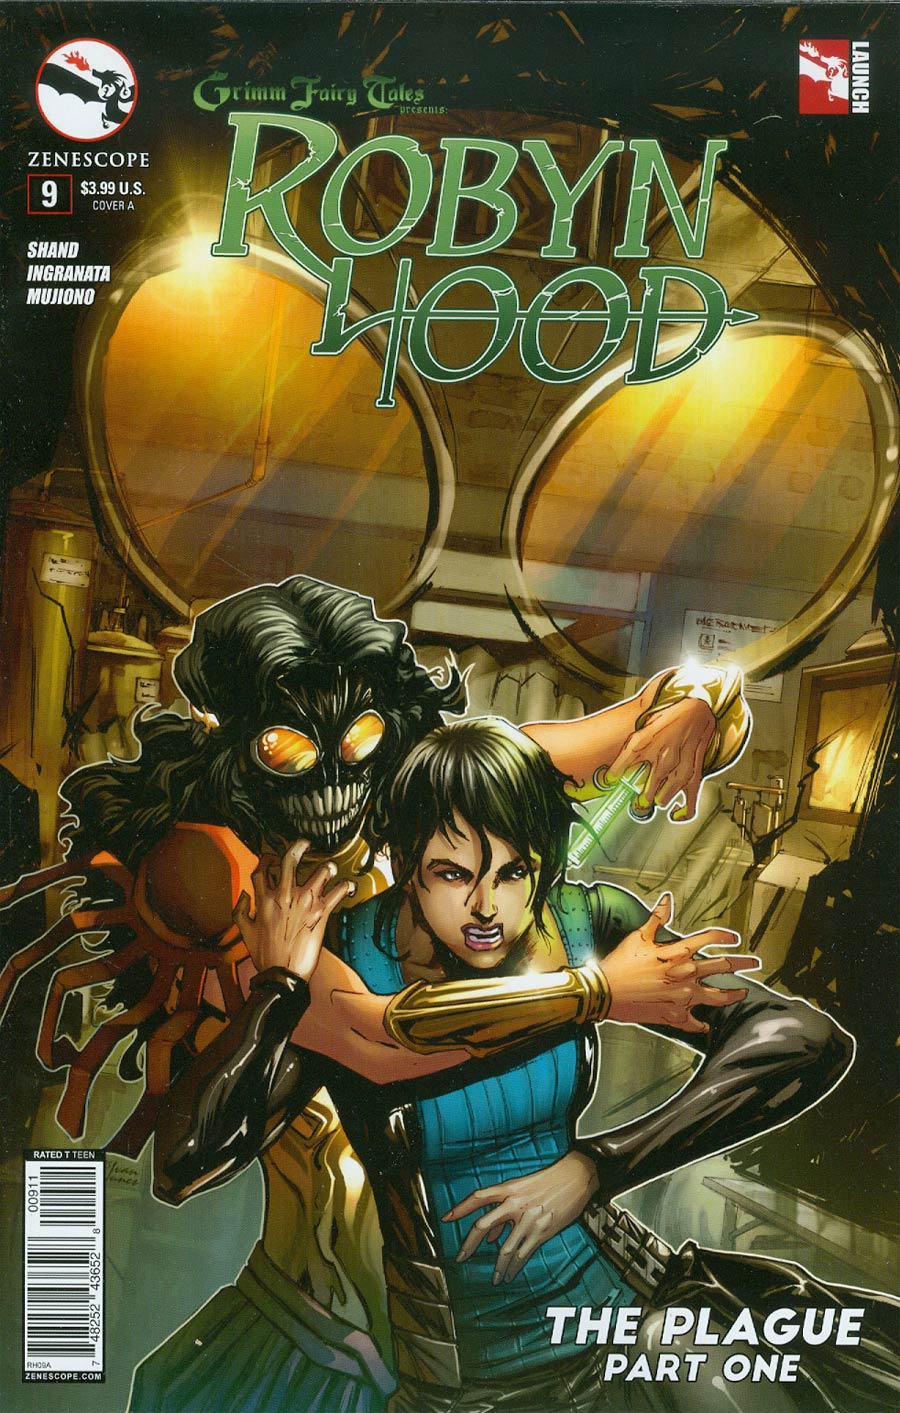 Grimm Fairy Tales Presents Robyn Hood Vol 2 #9 Cover A Tony Brescini